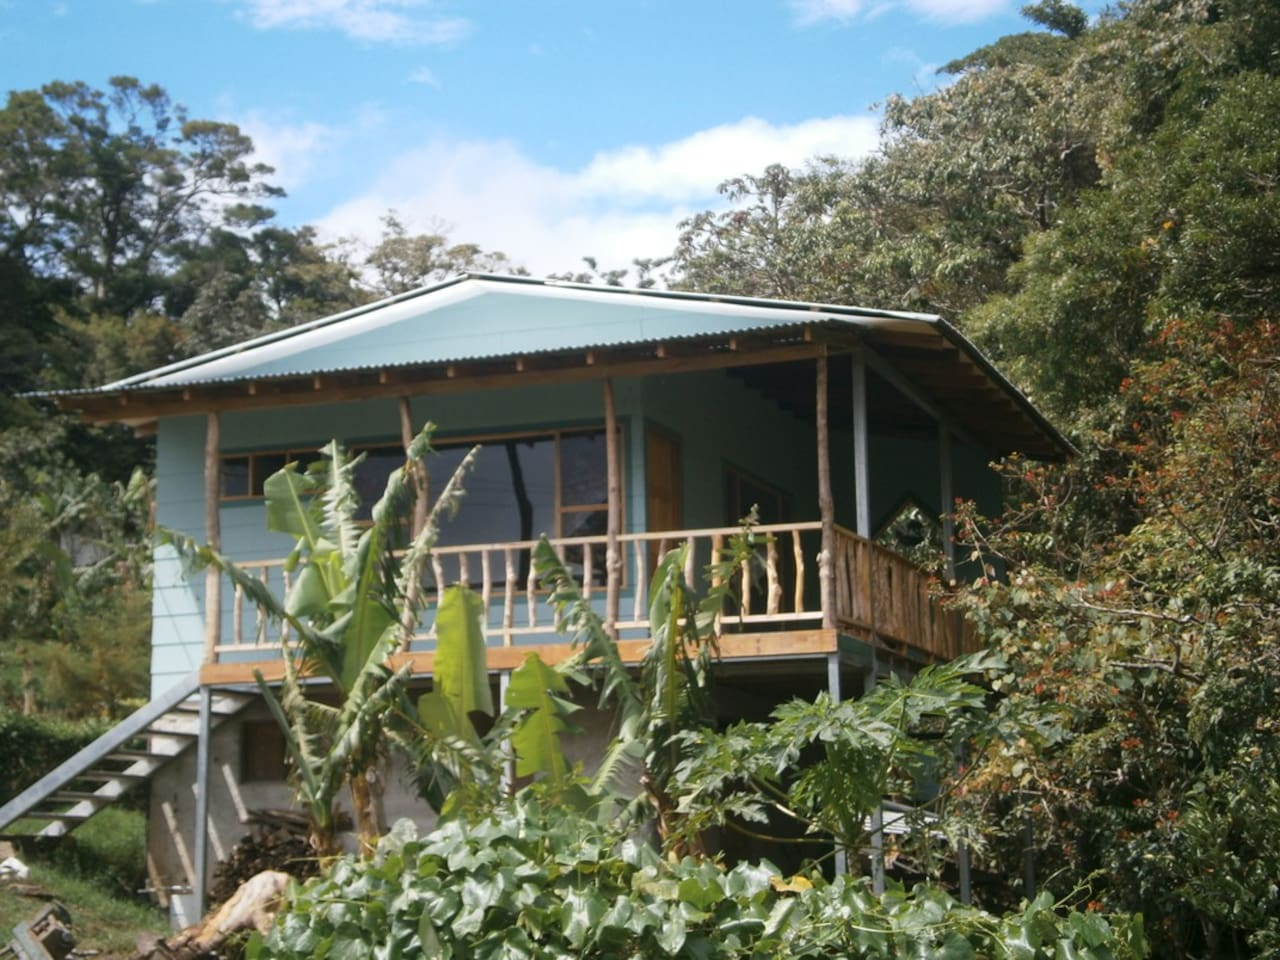 Casa Libelula is nestled alongside the forest over the creek.